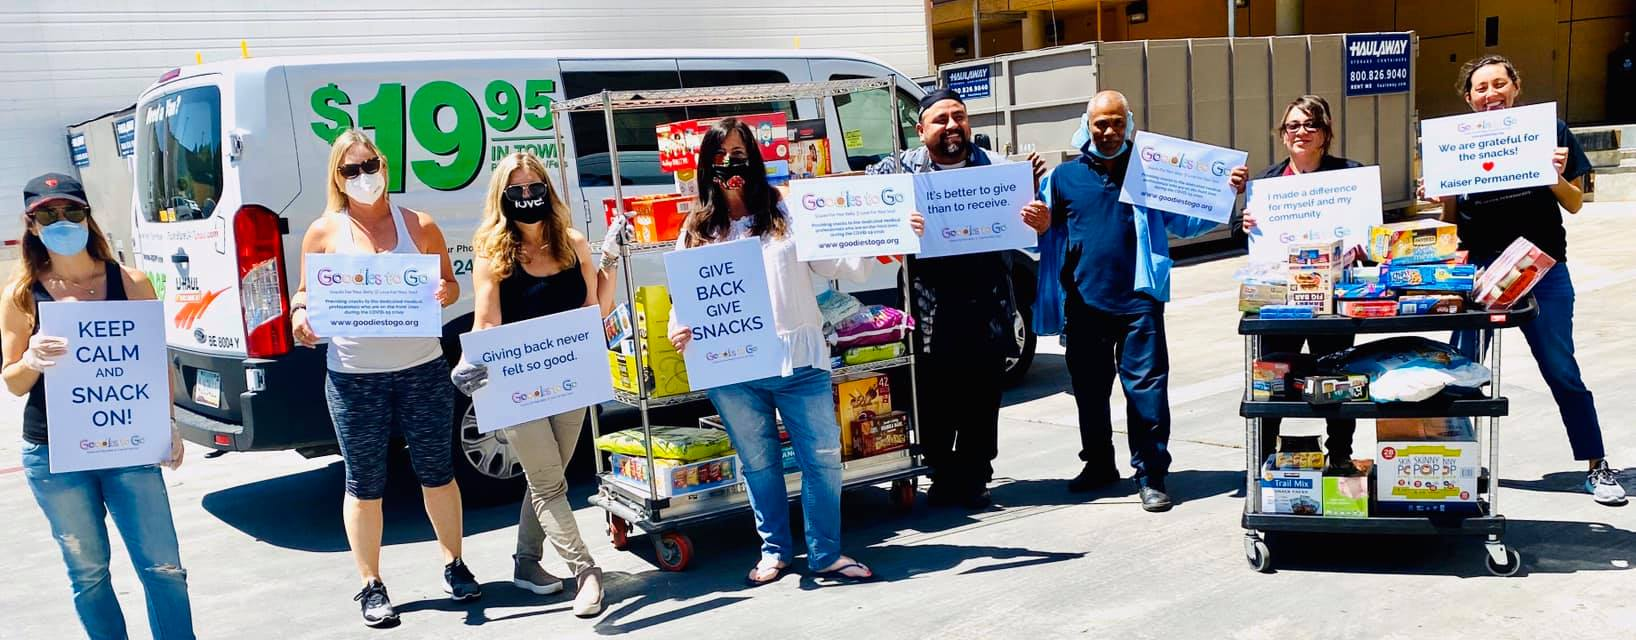 Snack Drive with signs that thank front-line workers